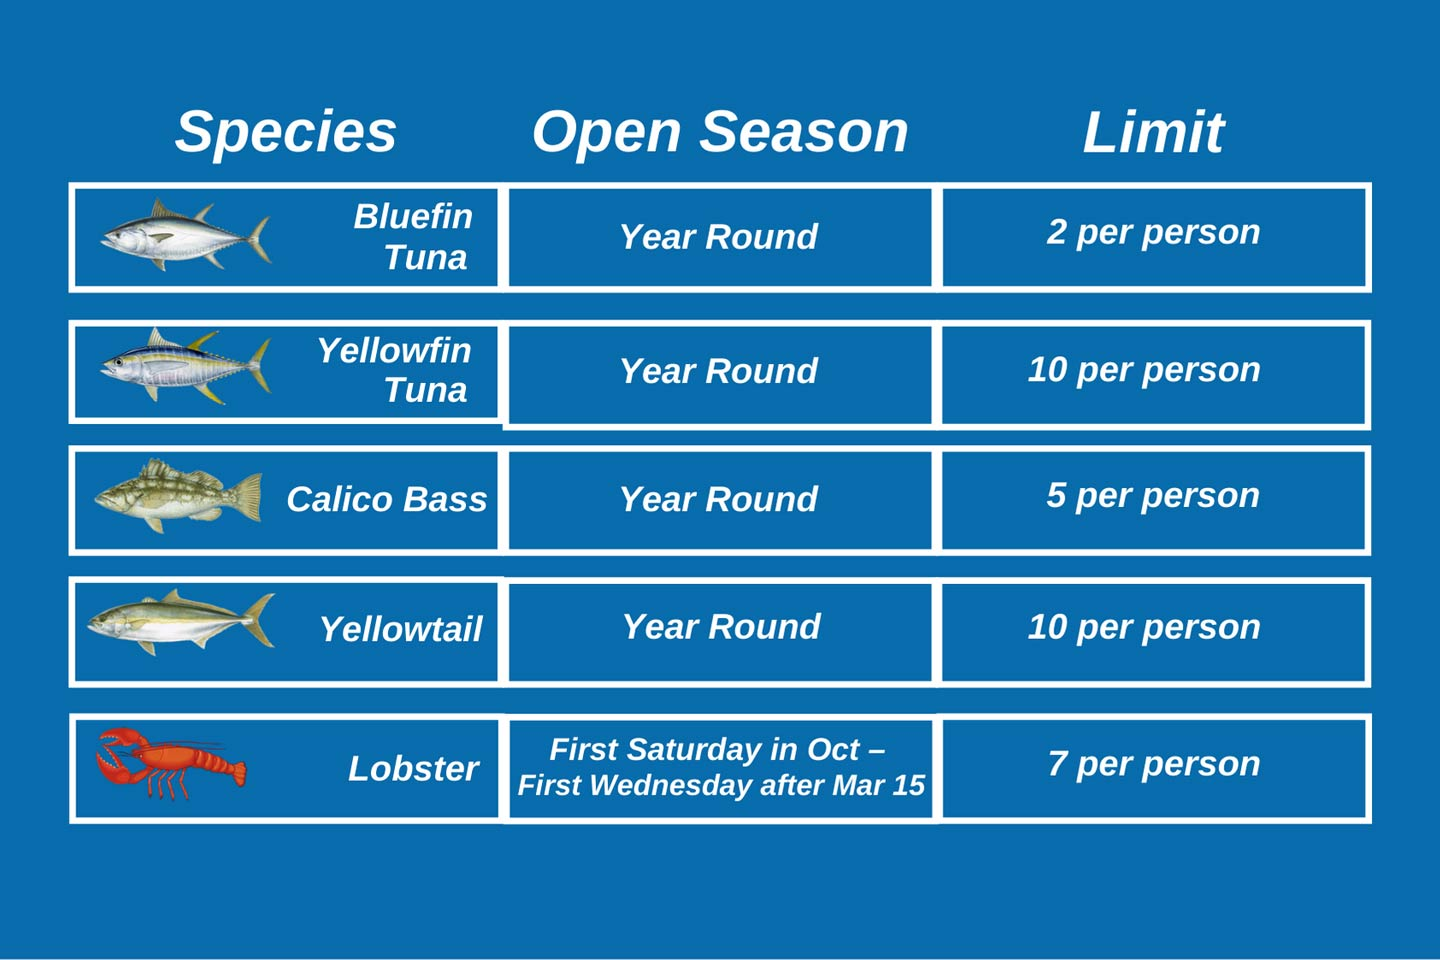 Infographic displaying Southern California open seasons and bagging limits for Bluefin and Yellowfin Tuna, Calico Bass, Yellowtail, and Spiny Lobster